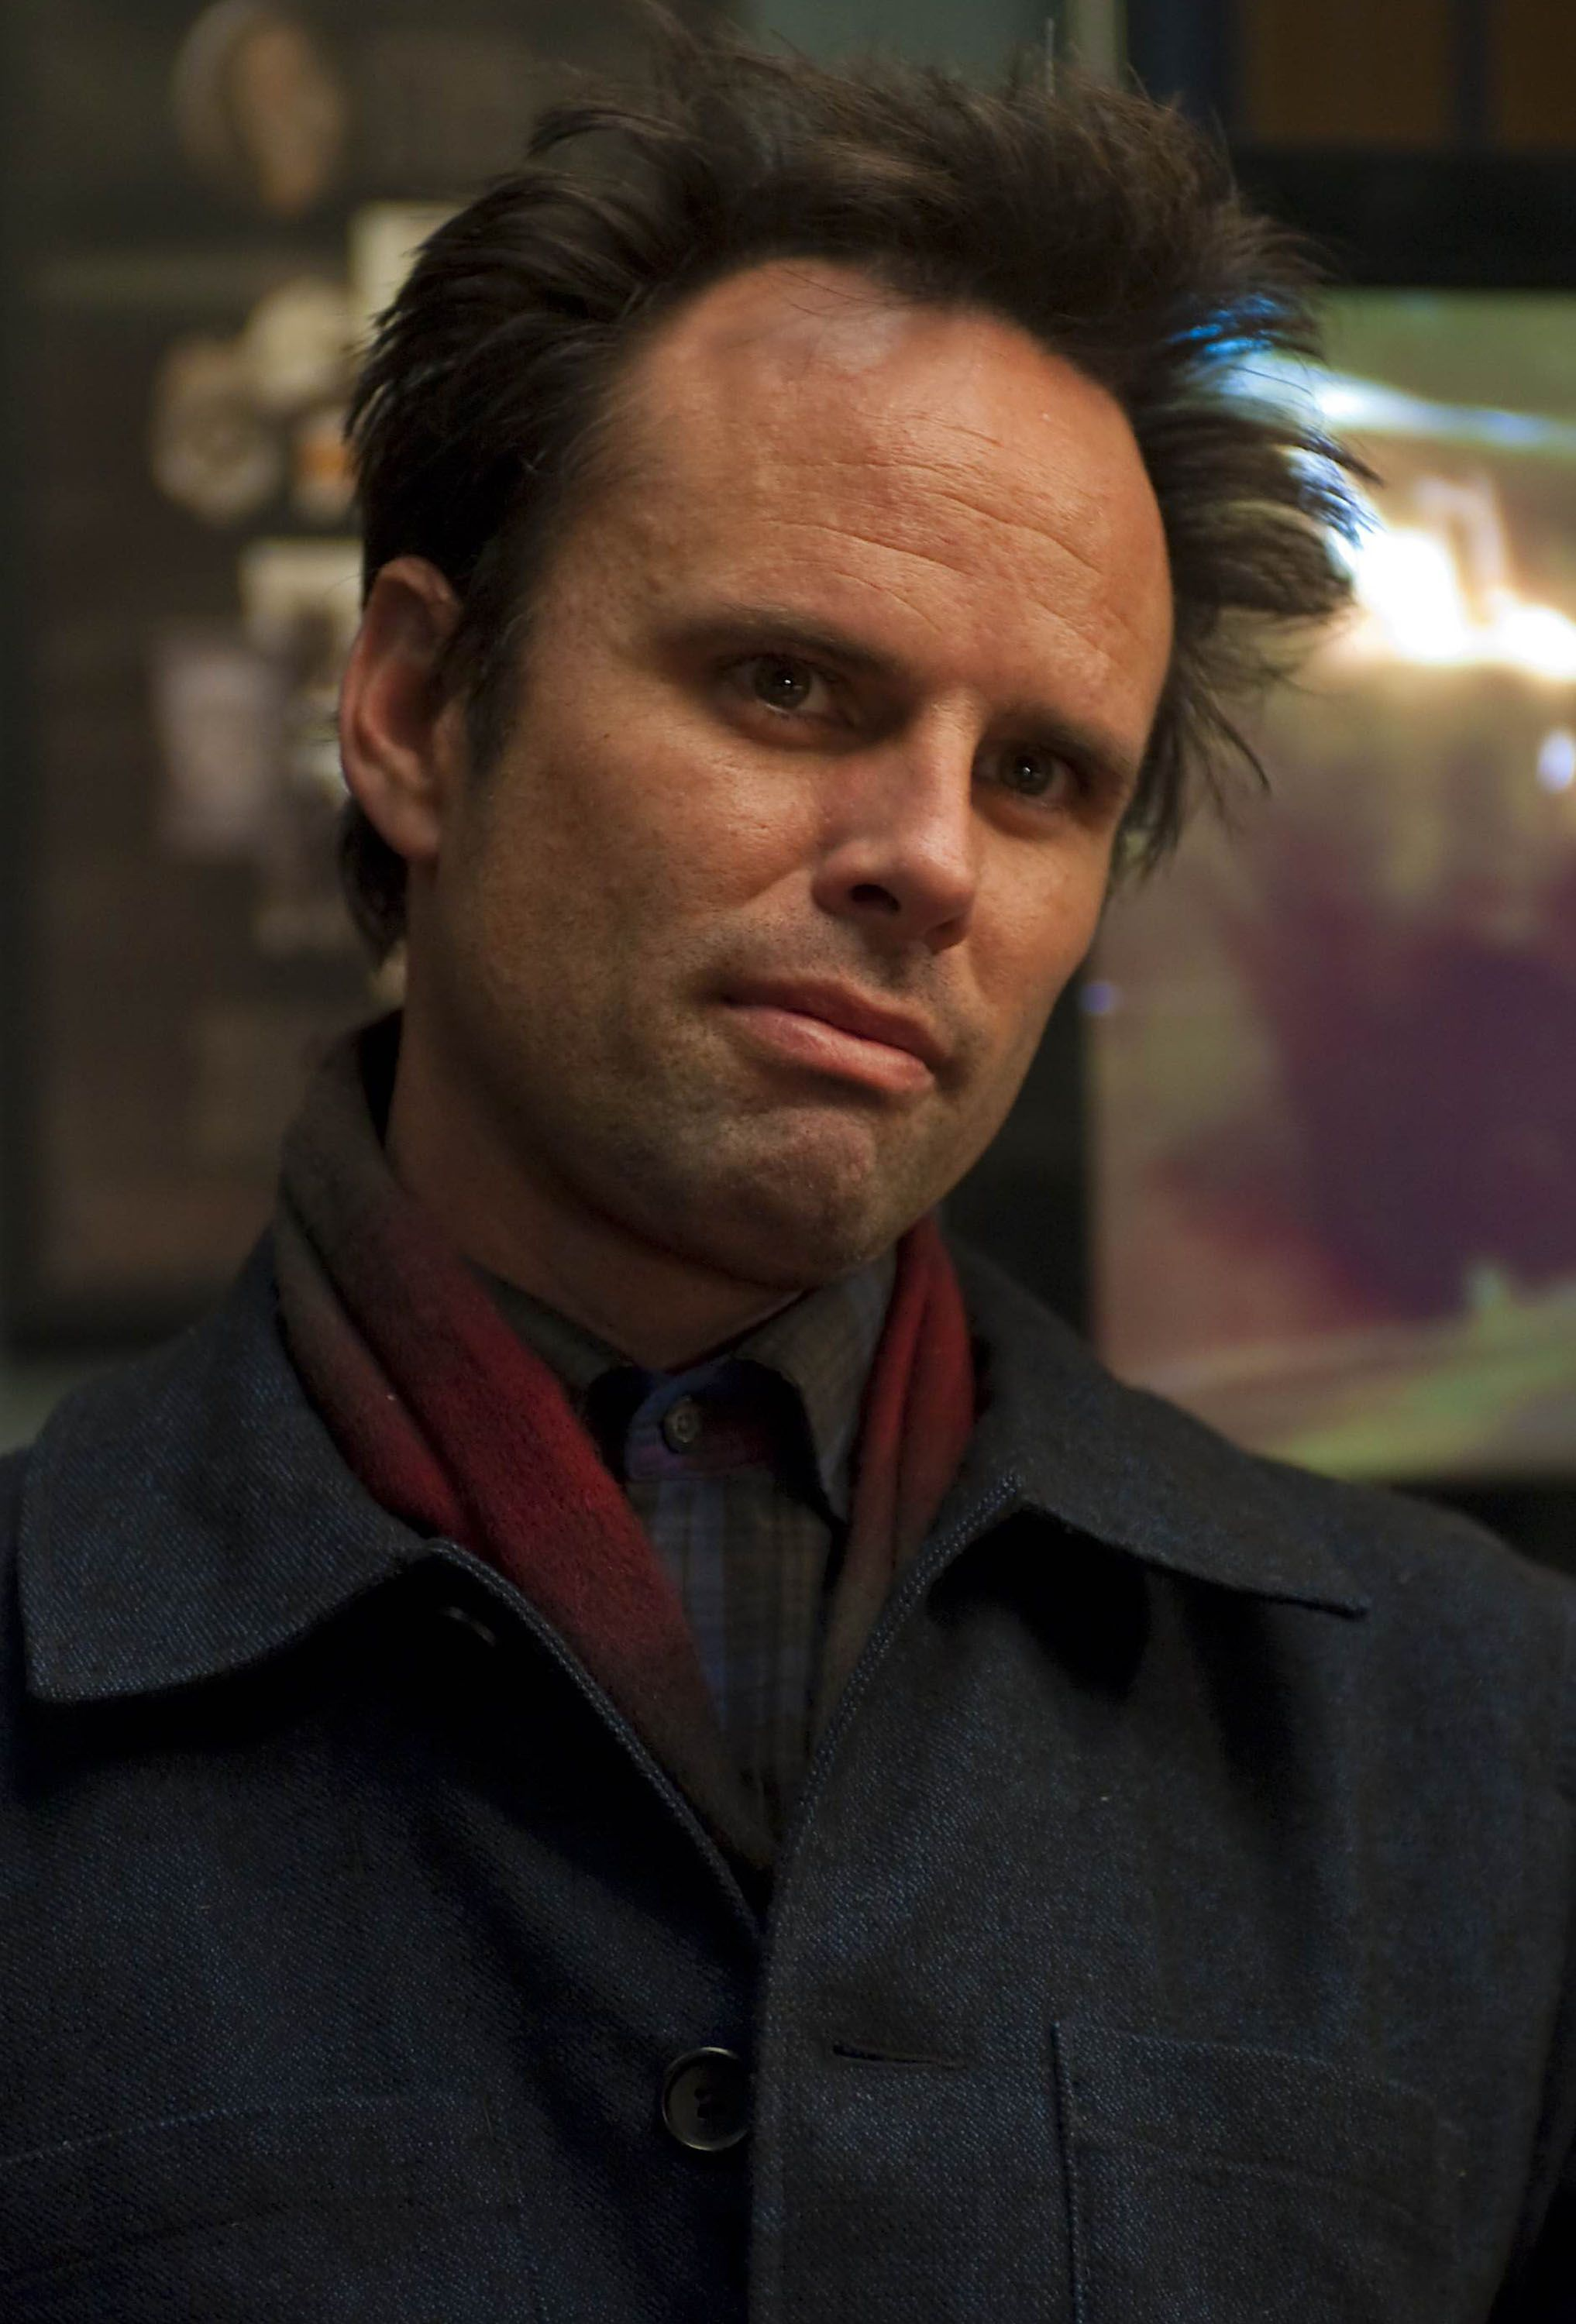 walton goggins 90210walton goggins instagram, walton goggins height, walton goggins young, walton goggins sons of anarchy bloopers, walton goggins six, walton goggins gif, walton goggins csi, walton goggins imdb, walton goggins funny, walton goggins 90210, walton goggins oscar, walton goggins legs, walton goggins csi miami, walton goggins wiki, walton goggins wikipedia, walton goggins django, walton goggins home, walton goggins photography, walton goggins twitter